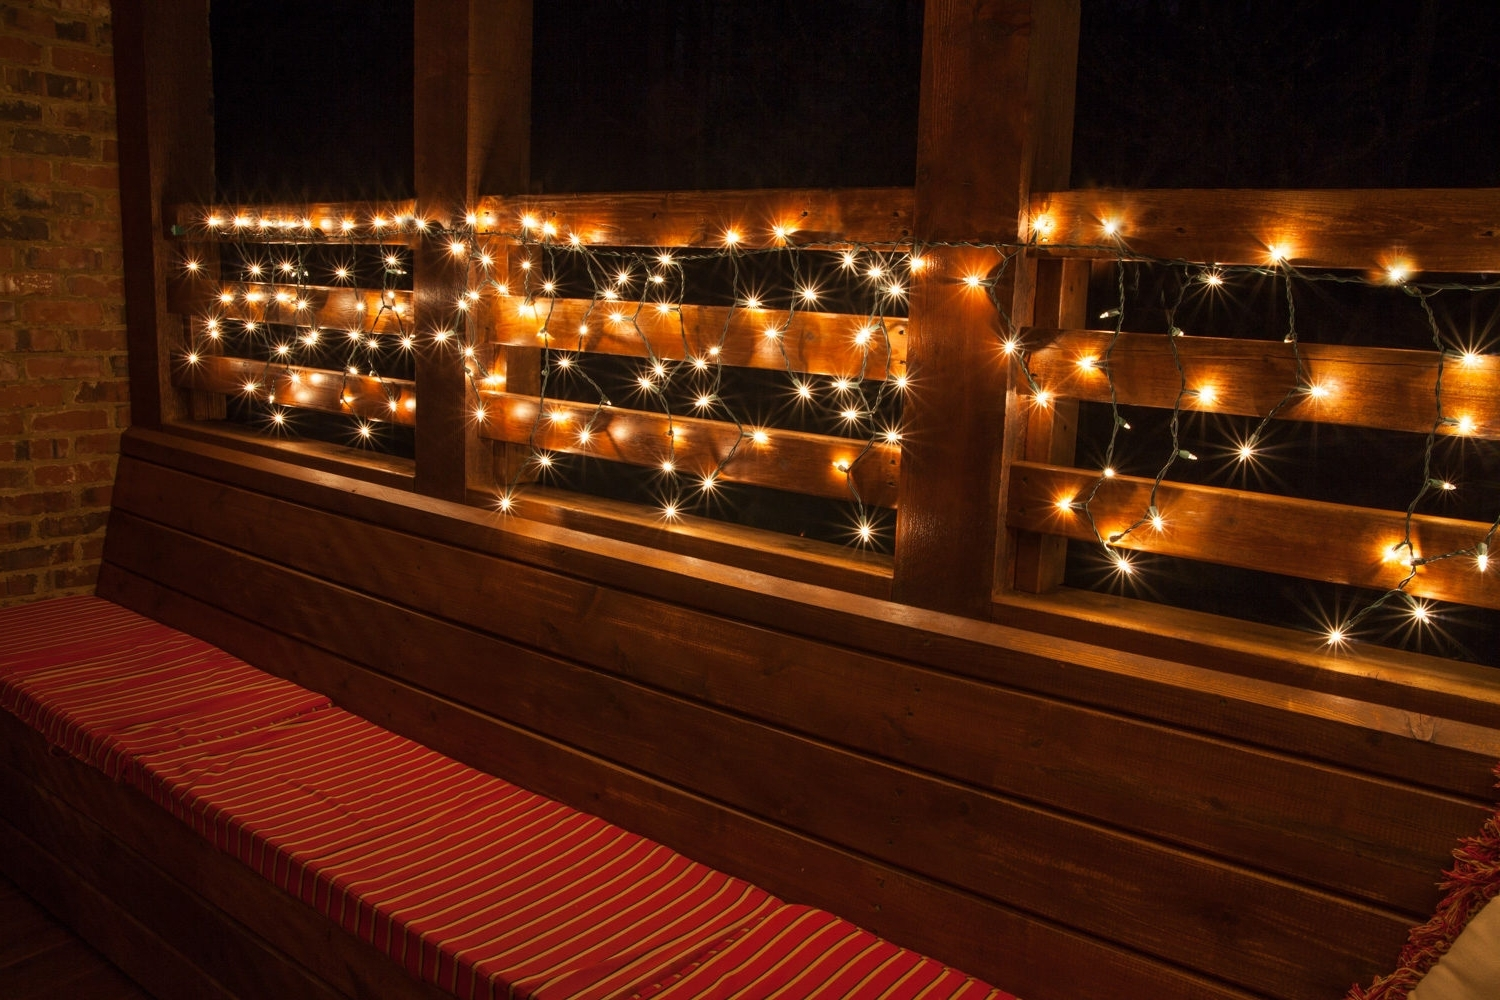 Deck Lighting Ideas With Brilliant Results! – Yard Envy With Regard To Best And Newest Outdoor Hanging Icicle Lights (View 12 of 20)